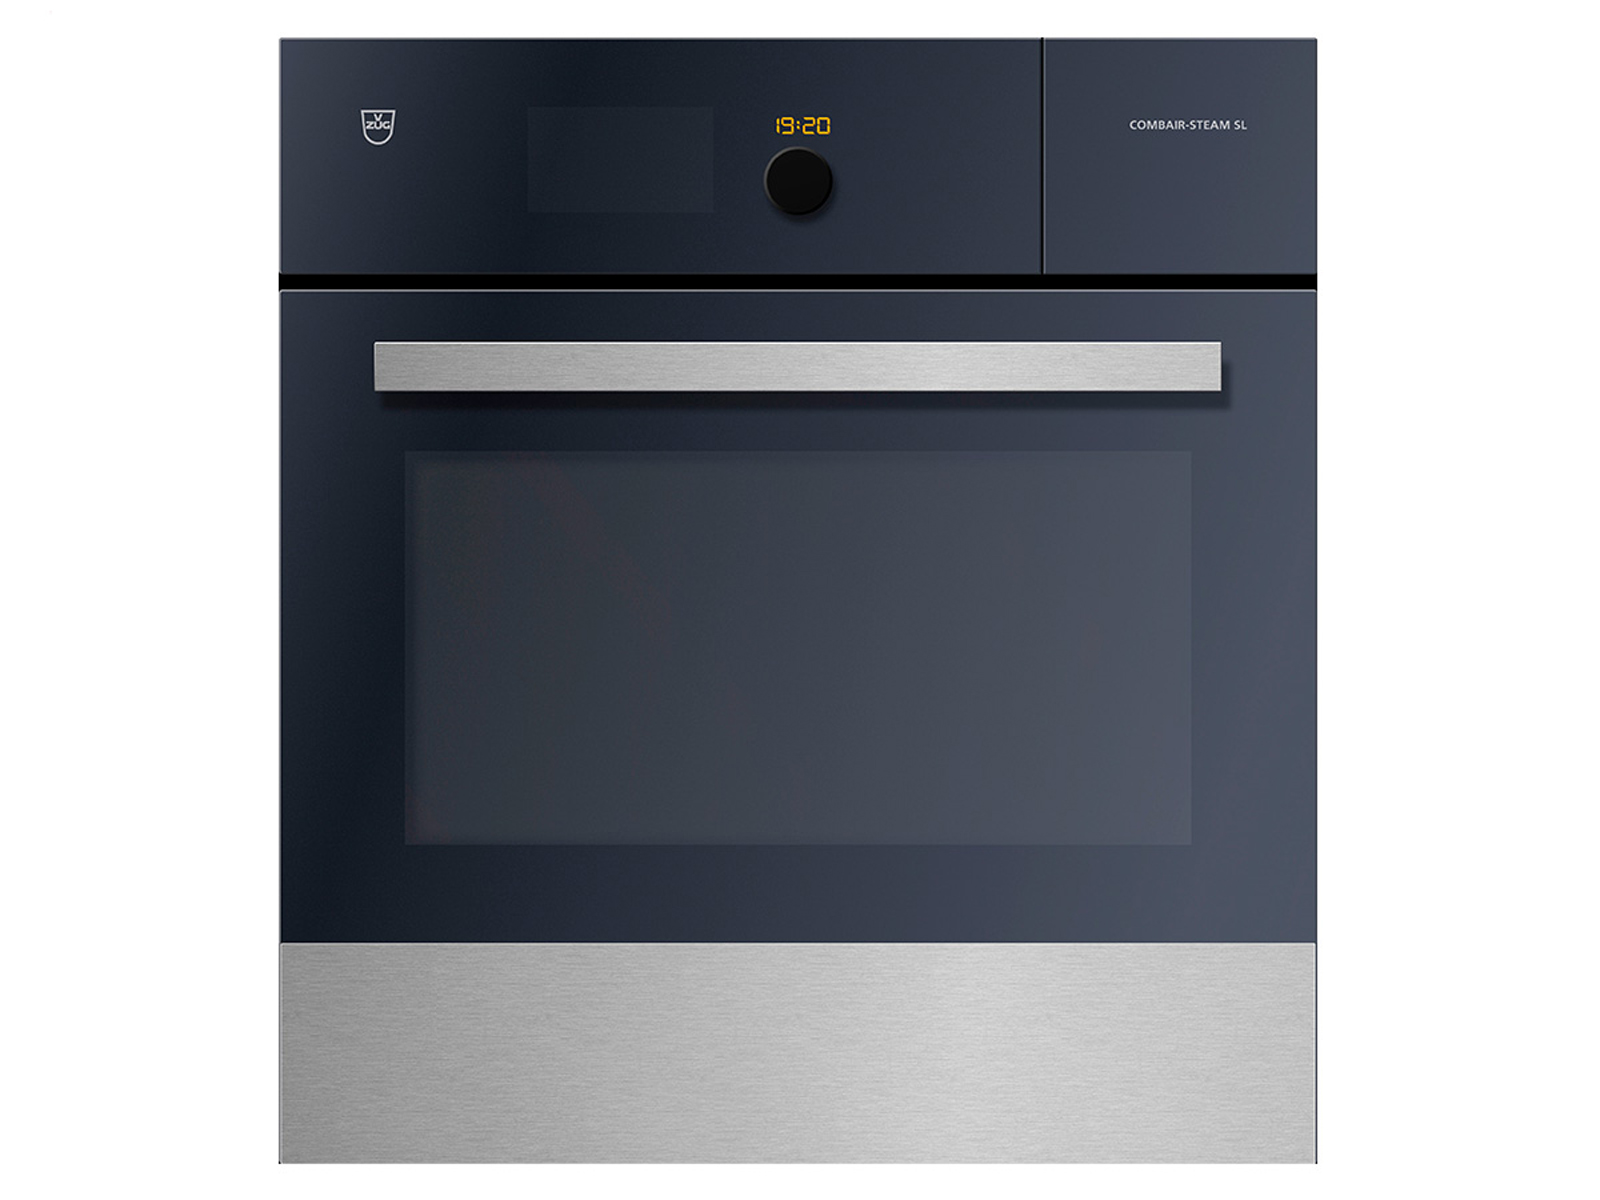 V ZUG CSSLZ60c bair Steam SL Dampfgar Backofen ChromeClass